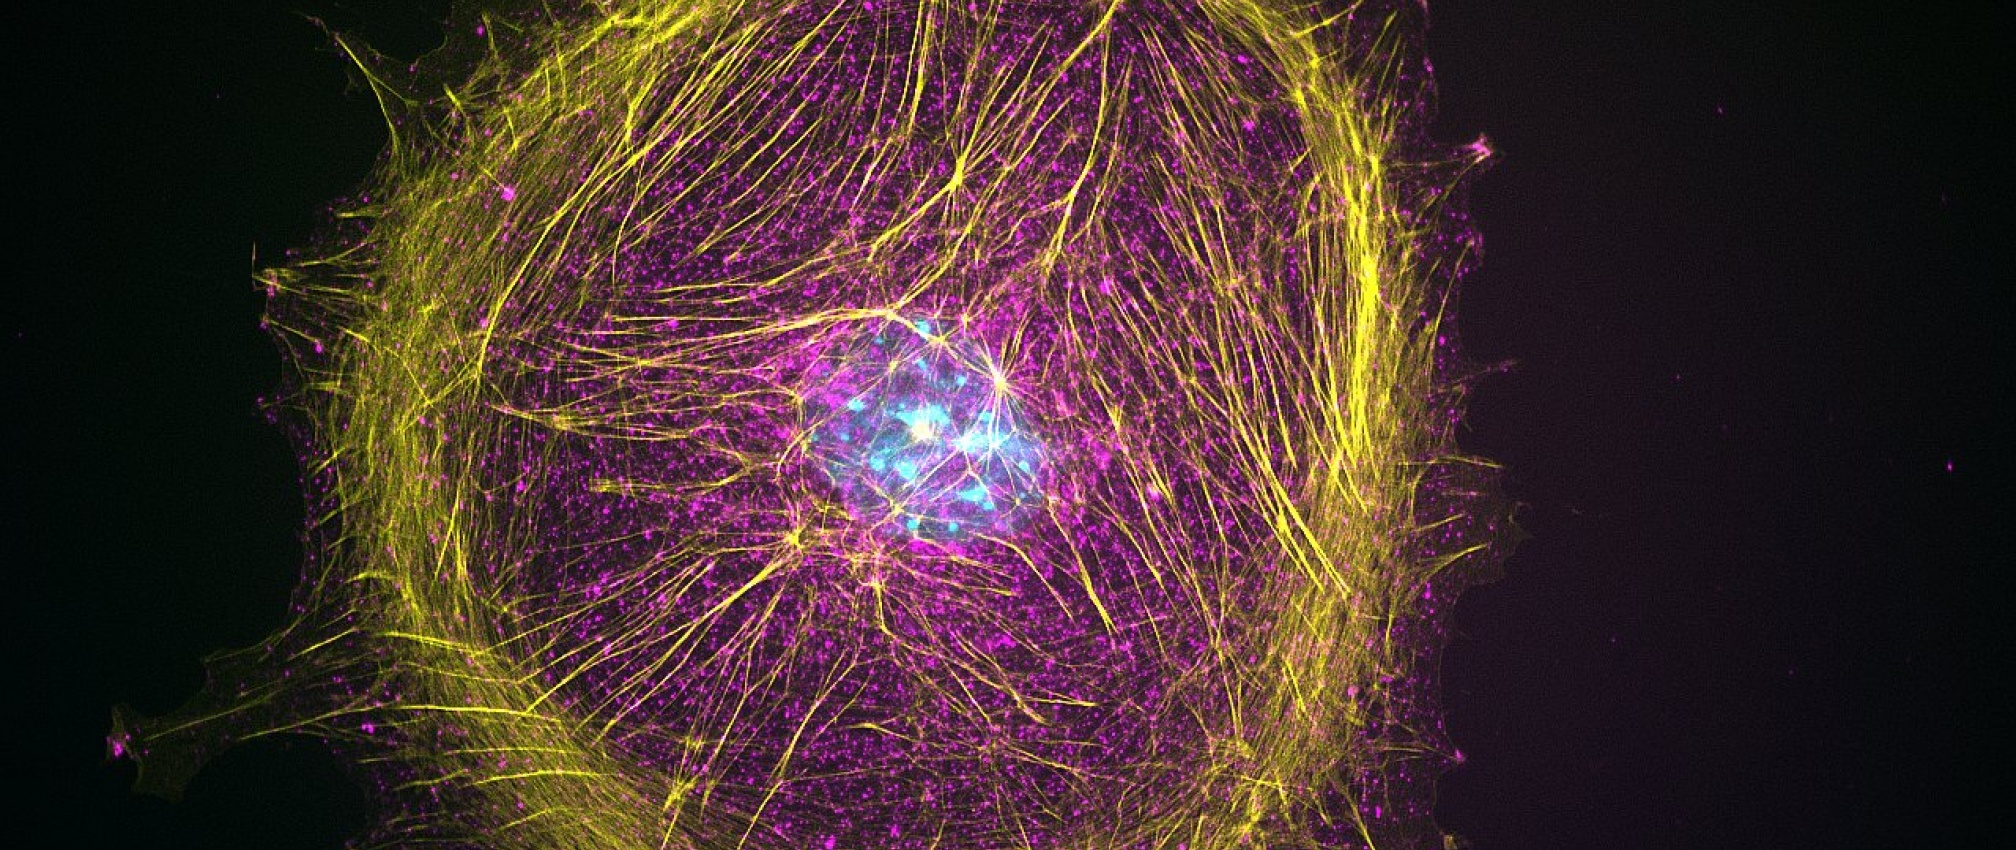 Mouse embryonic fibroblast (MEF) cells stained for beta-catenin (red), actin (yellow), and DNA (blue).